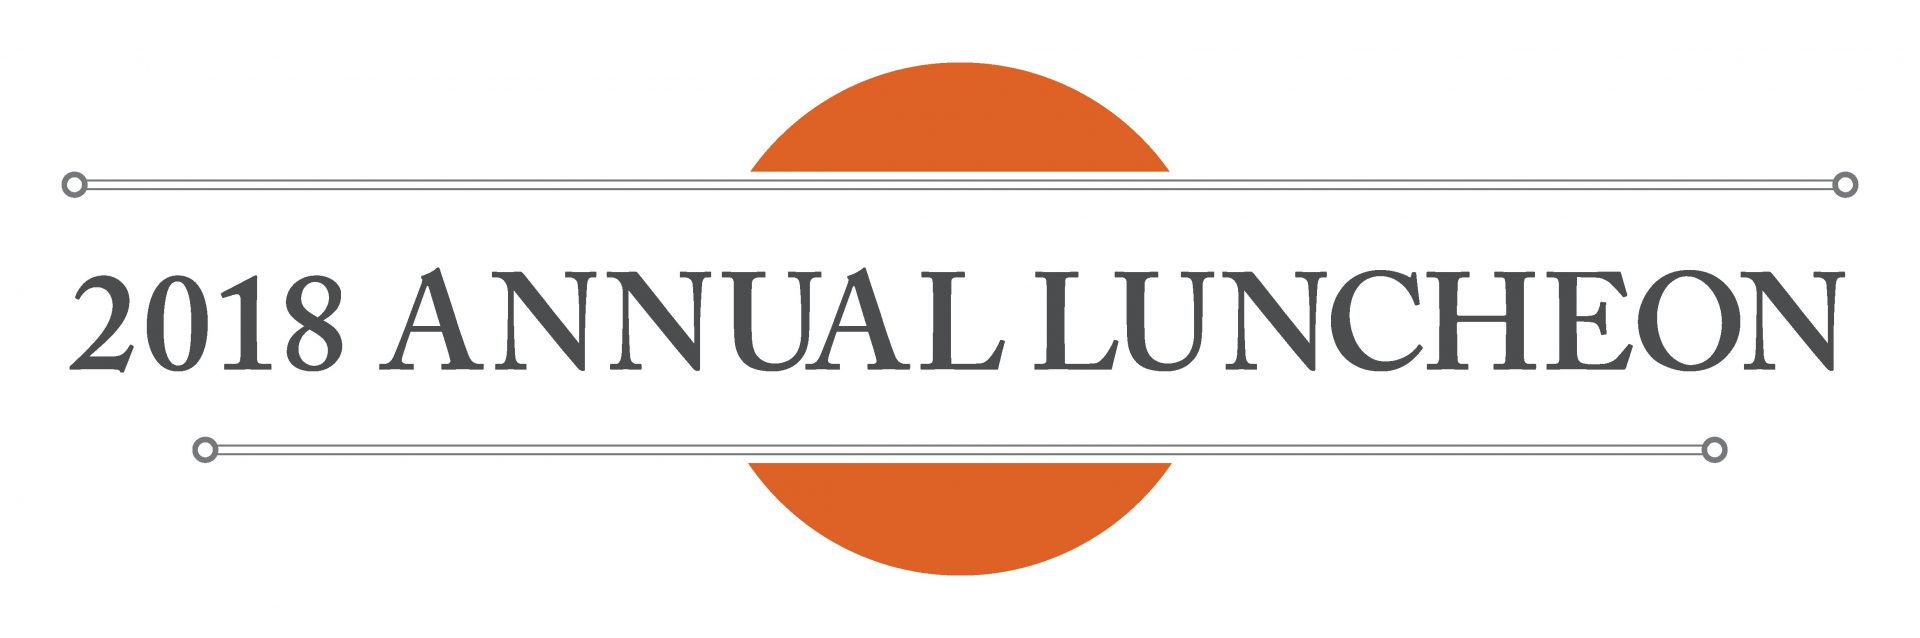 2018 Annual Luncheon